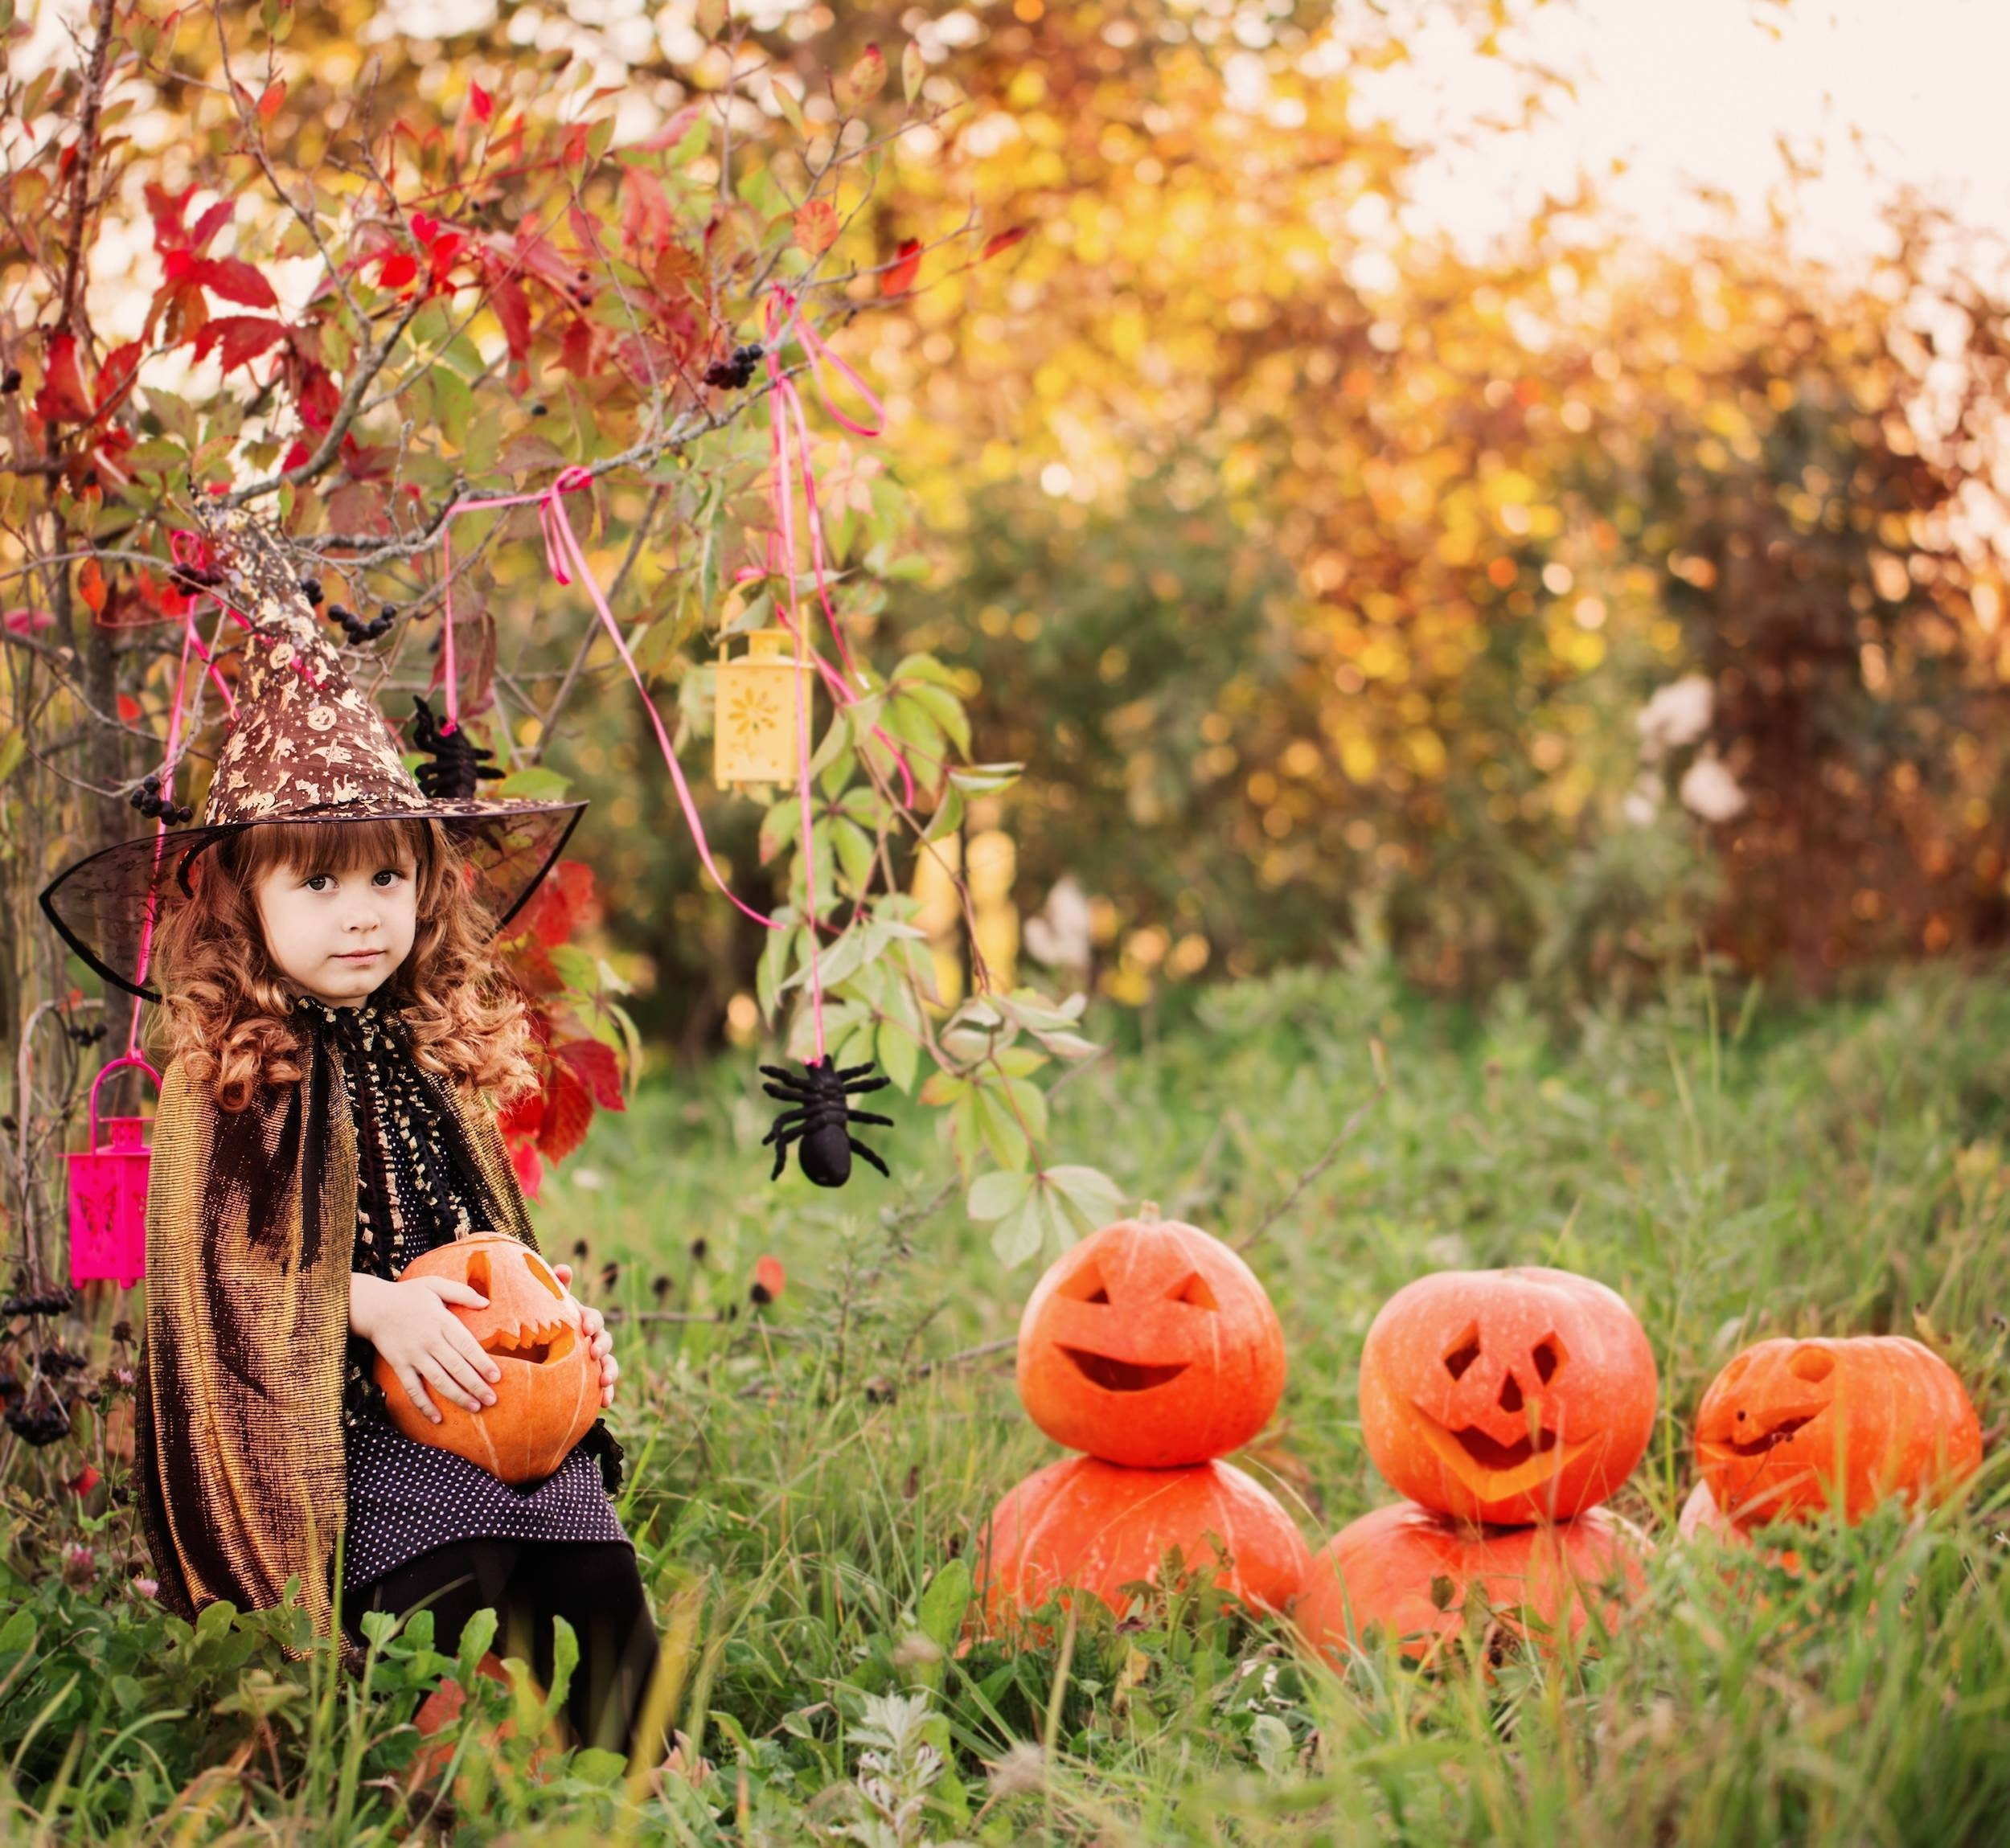 Halloween Activities in Morristown and Morris Township This Weekend